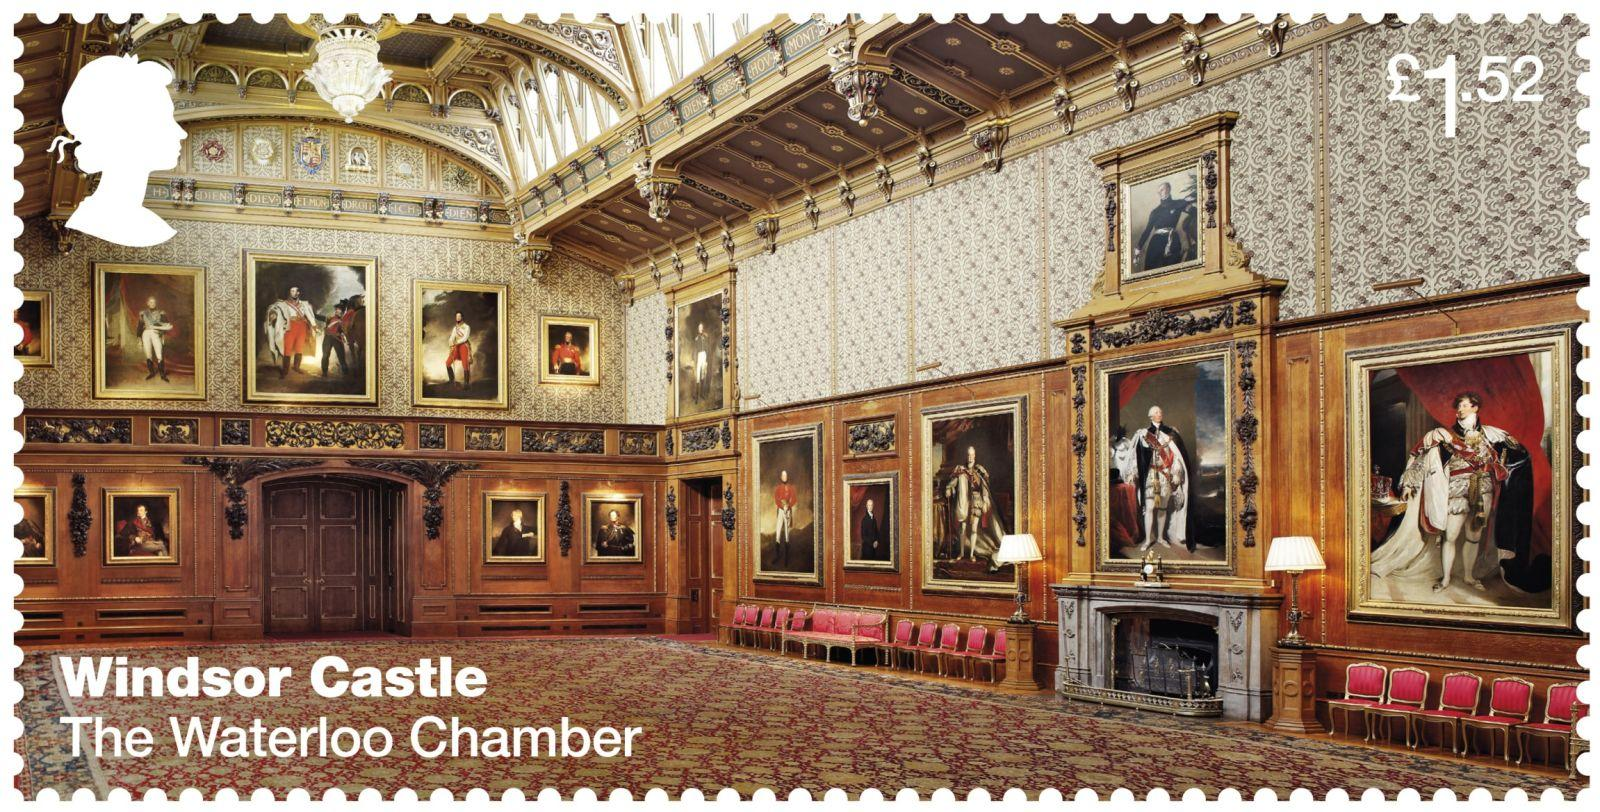 Windsor_Castle_on_Royal_Mail_stamps07